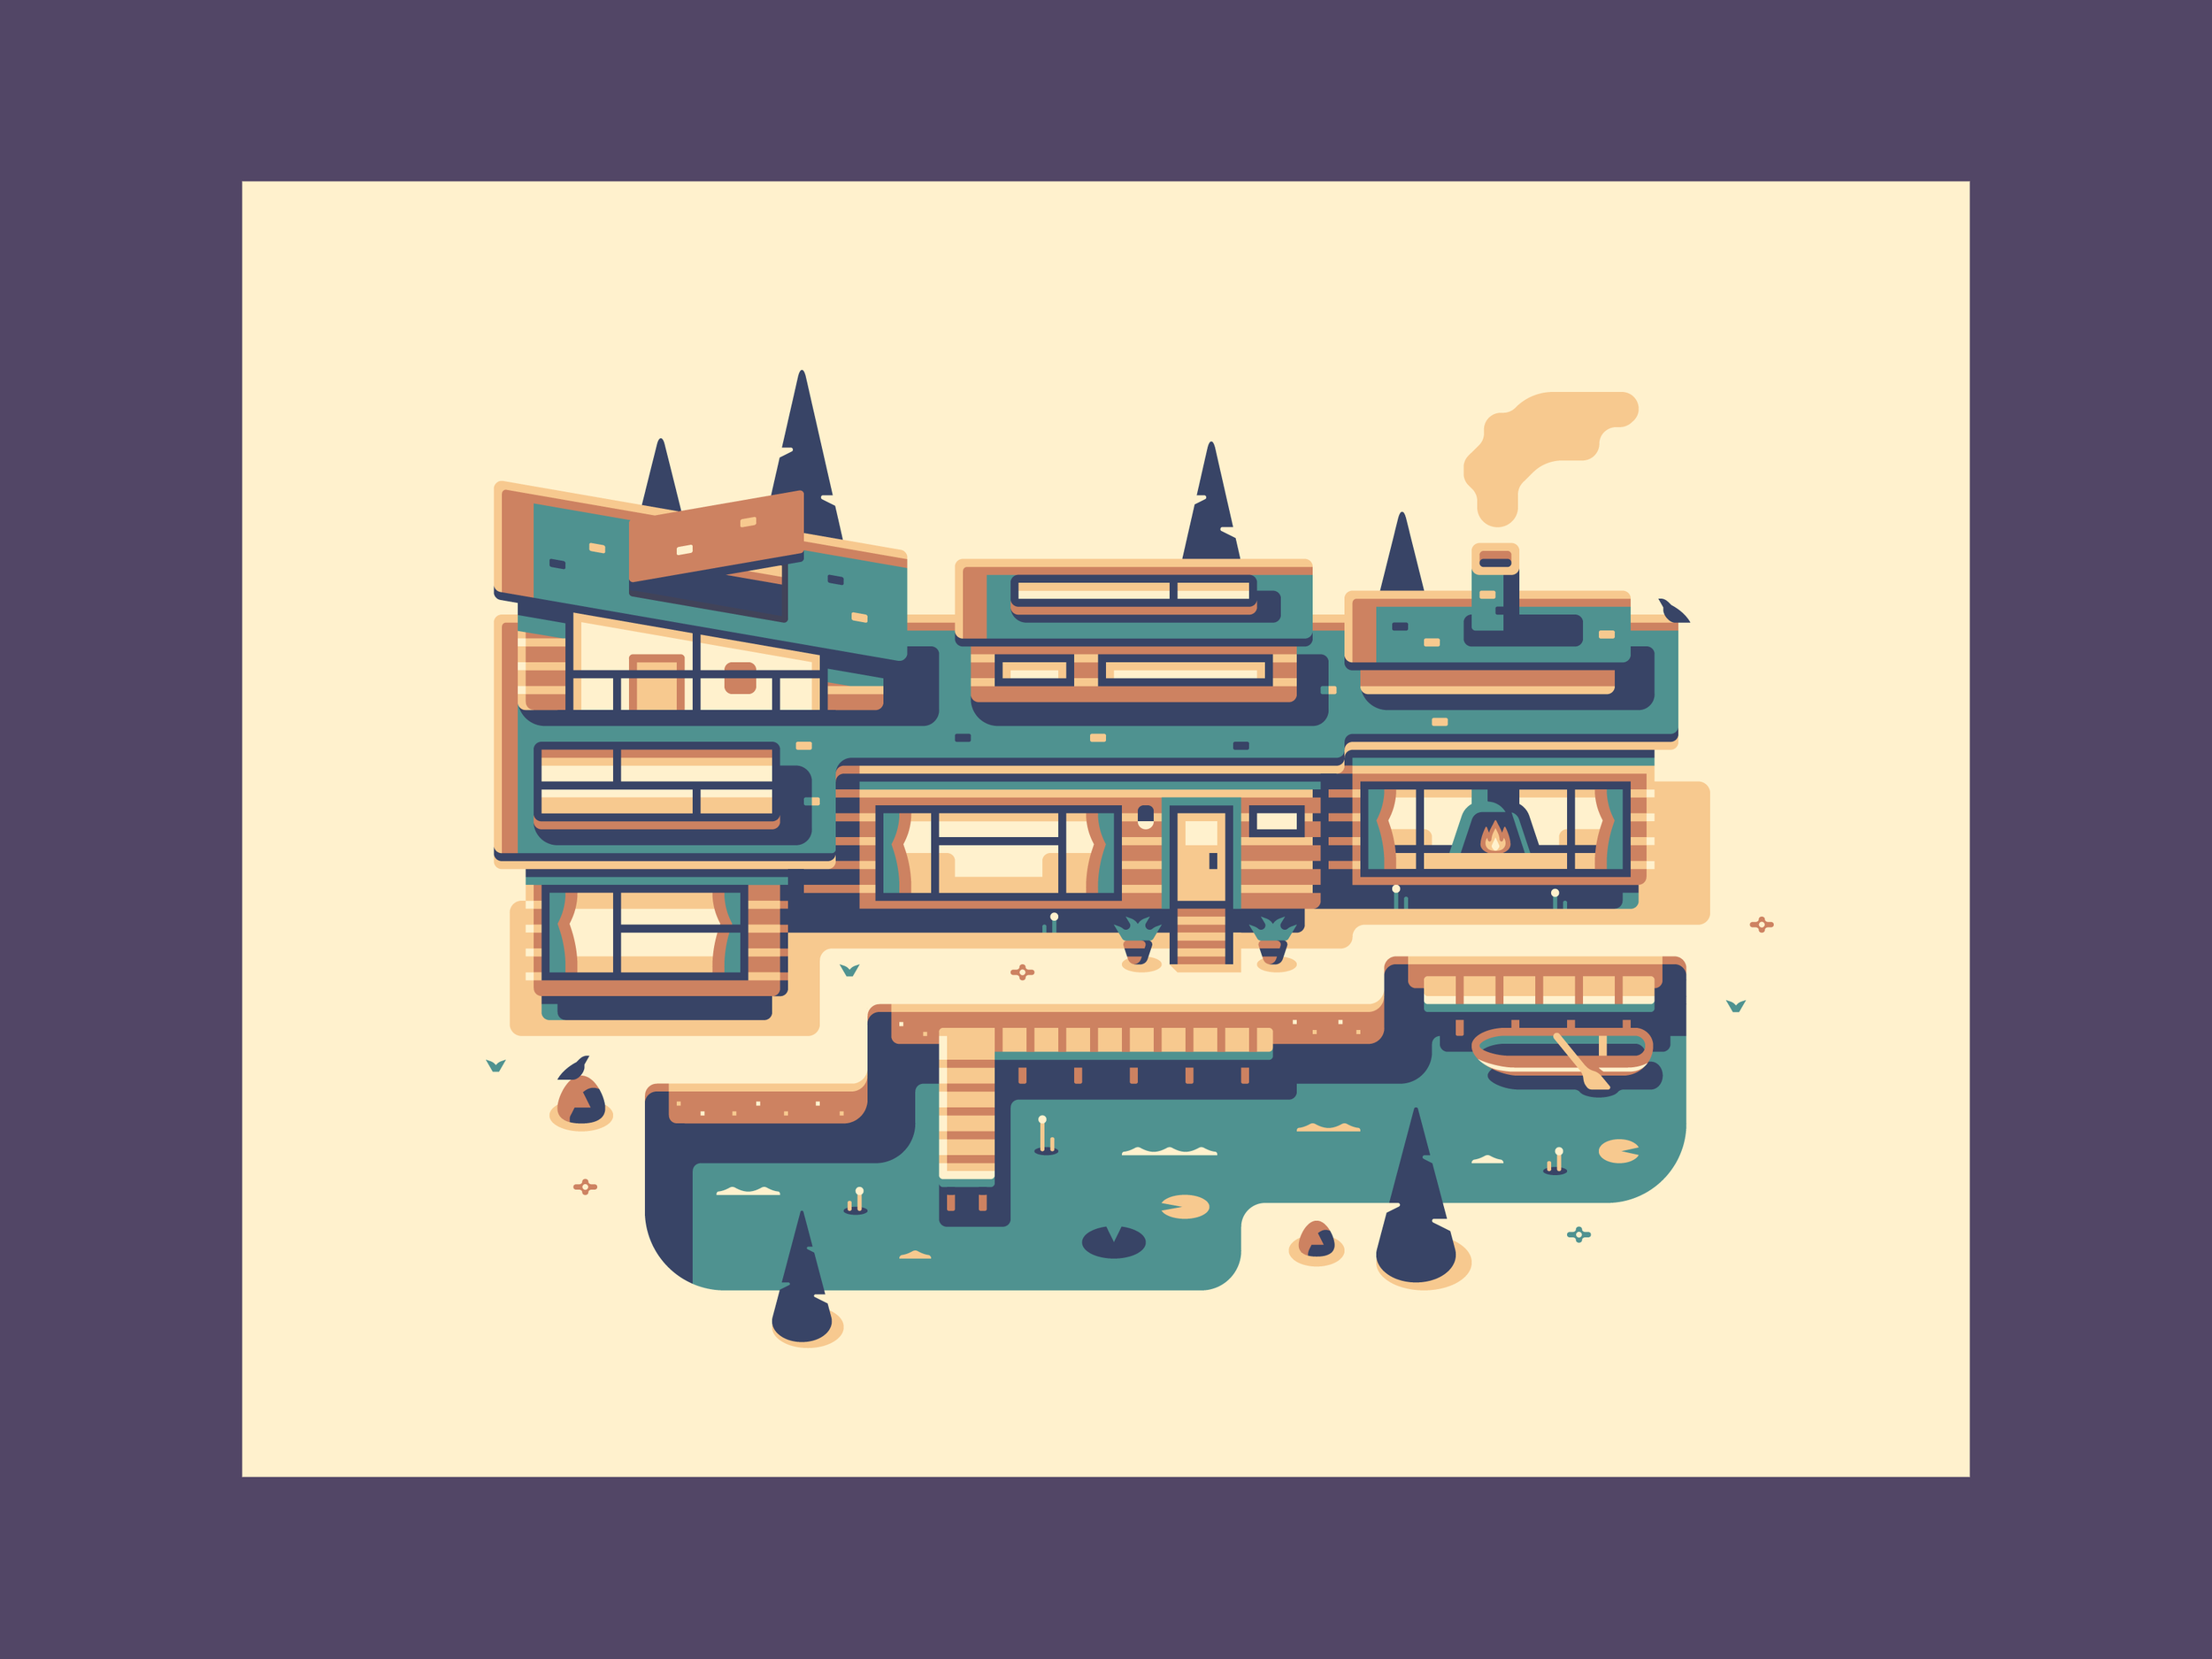 Lake - Modern Homes prints by Canopy Design and Illustration